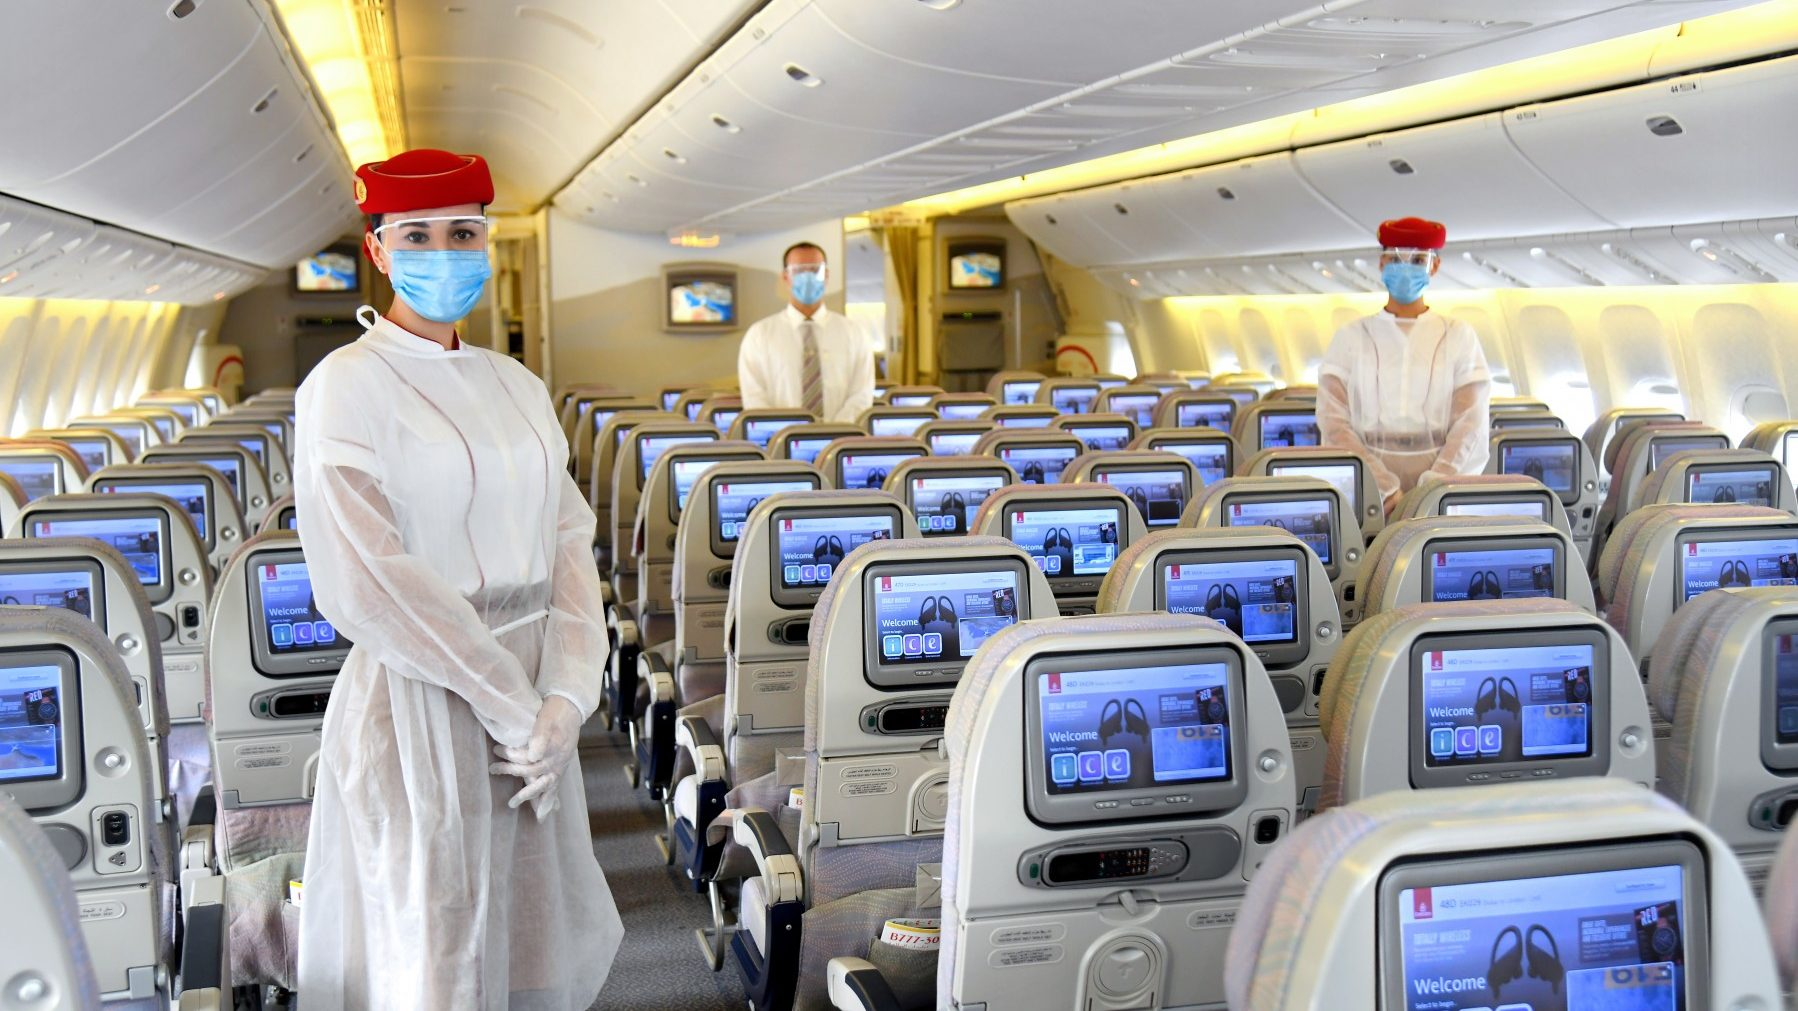 The Future Of Travel After The Coronavirus Pandemic